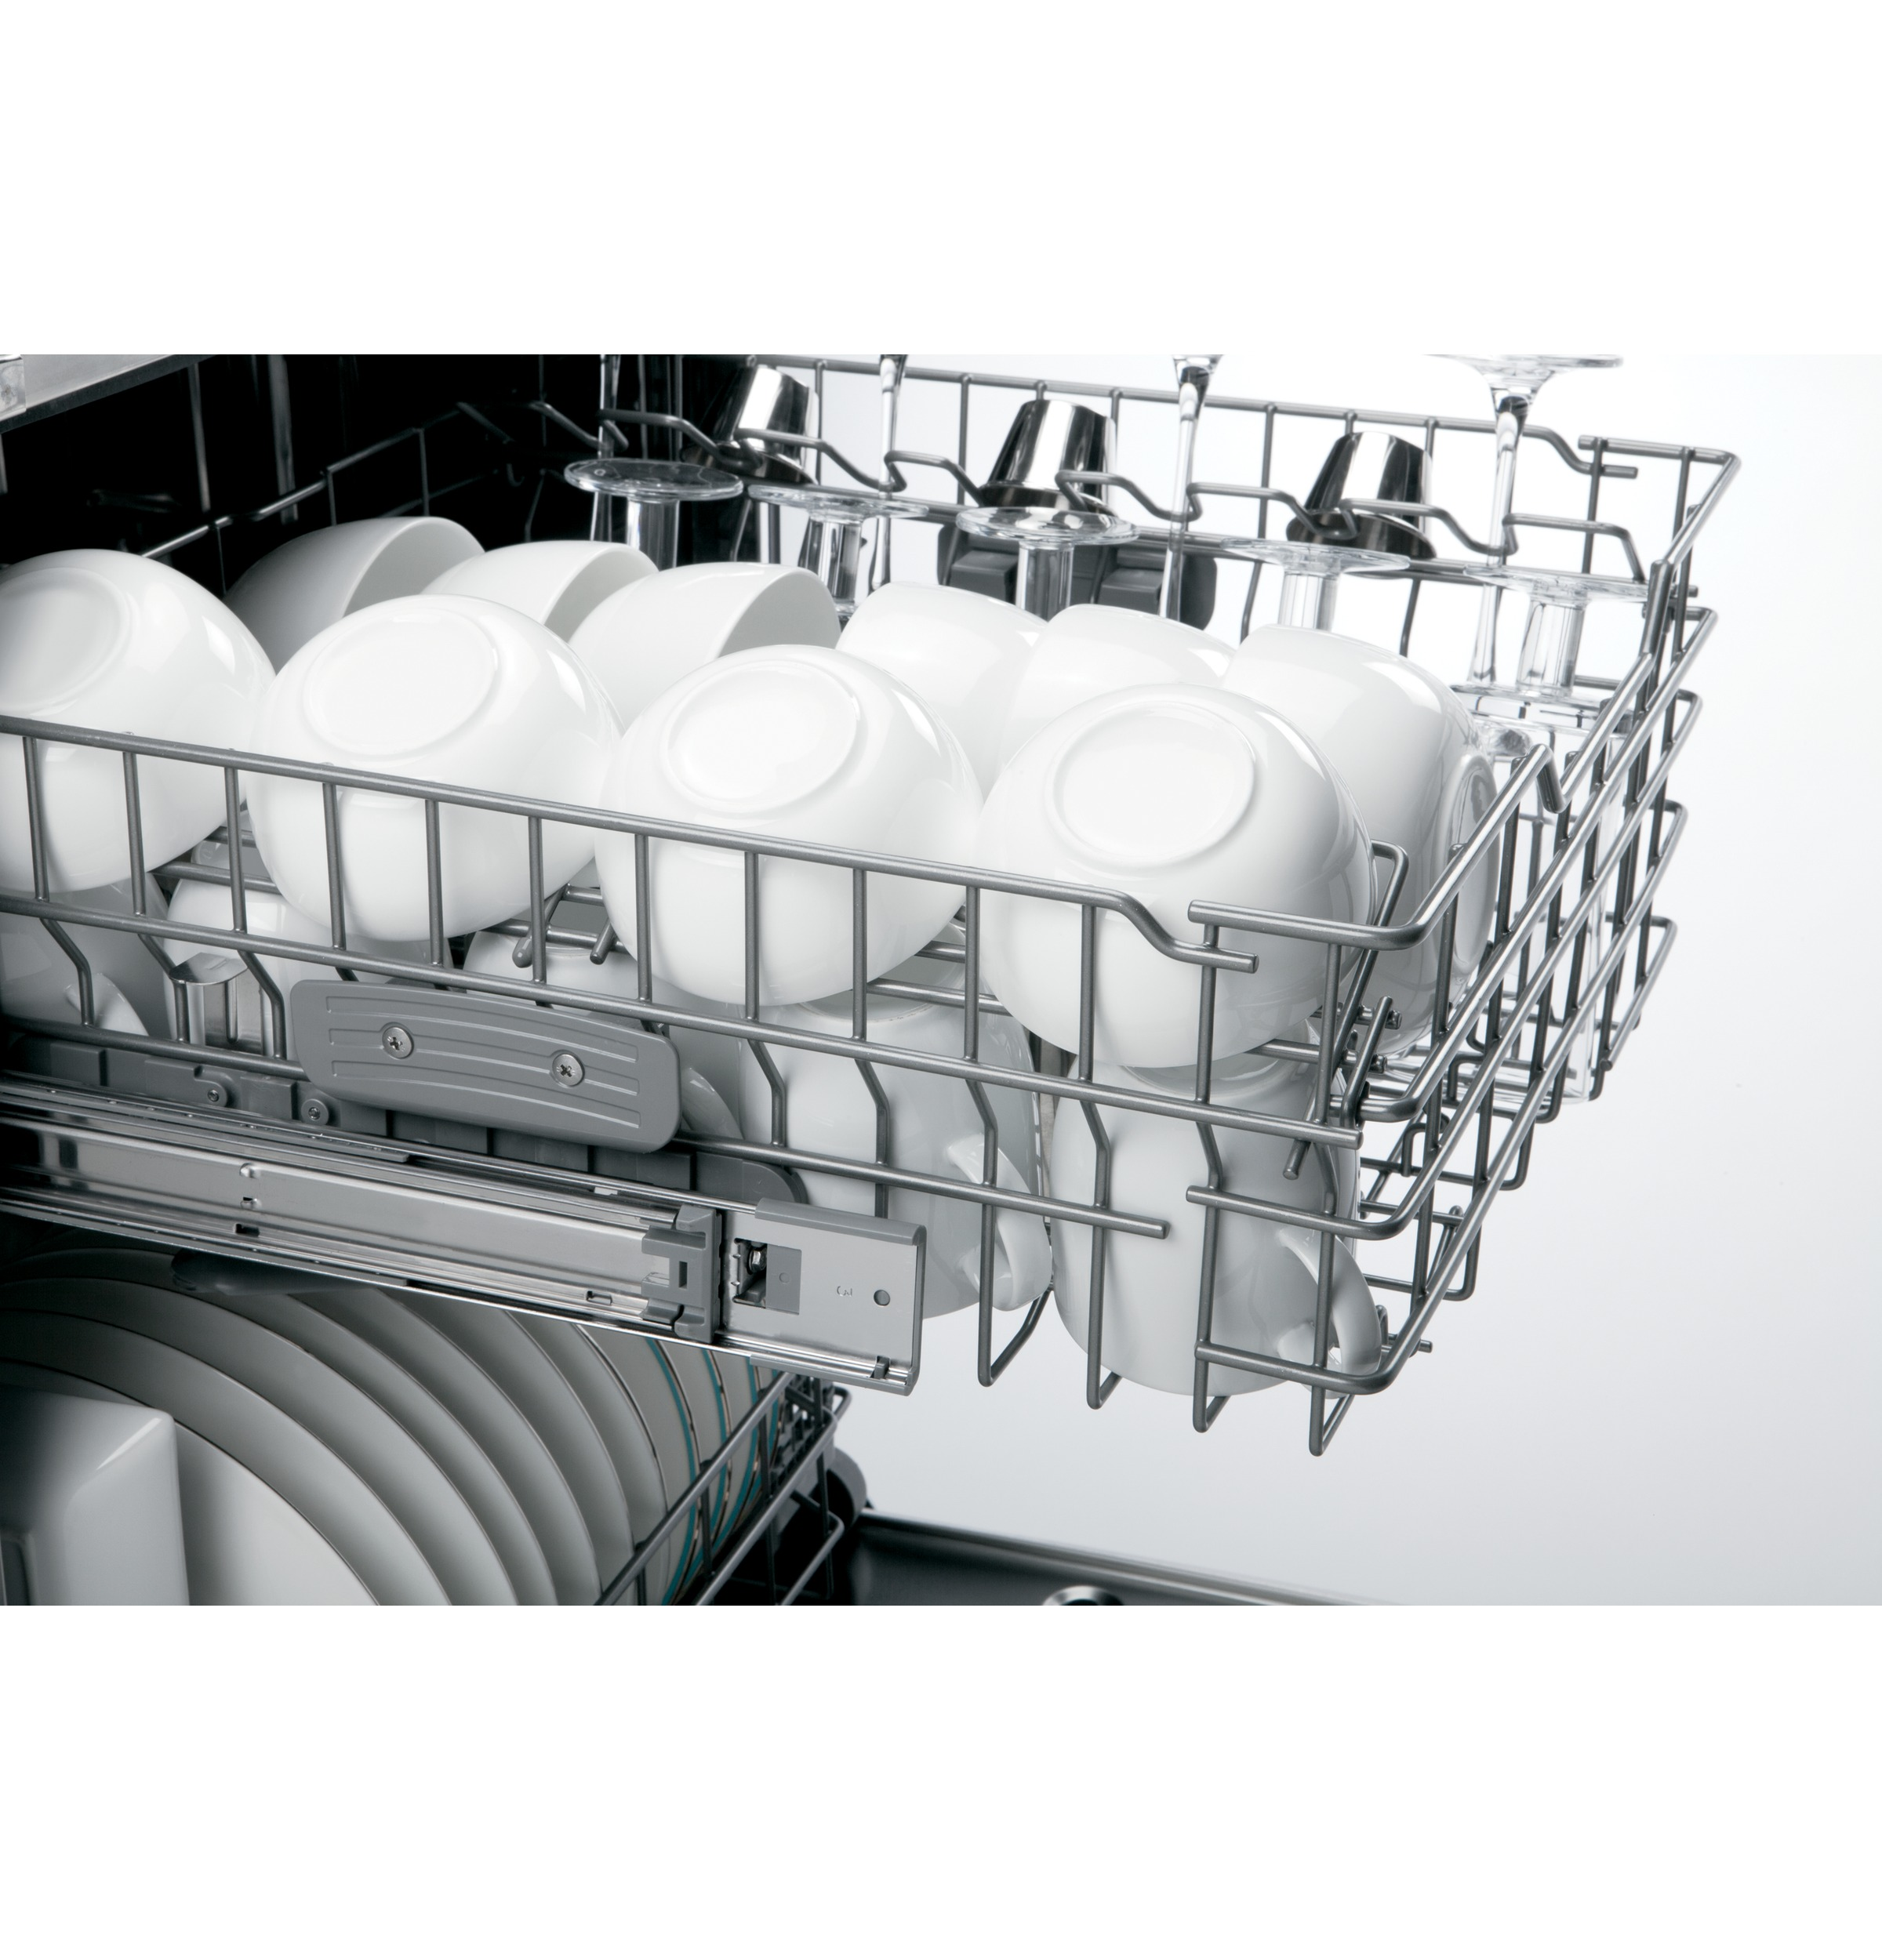 ge dishwasher cleaning instructions